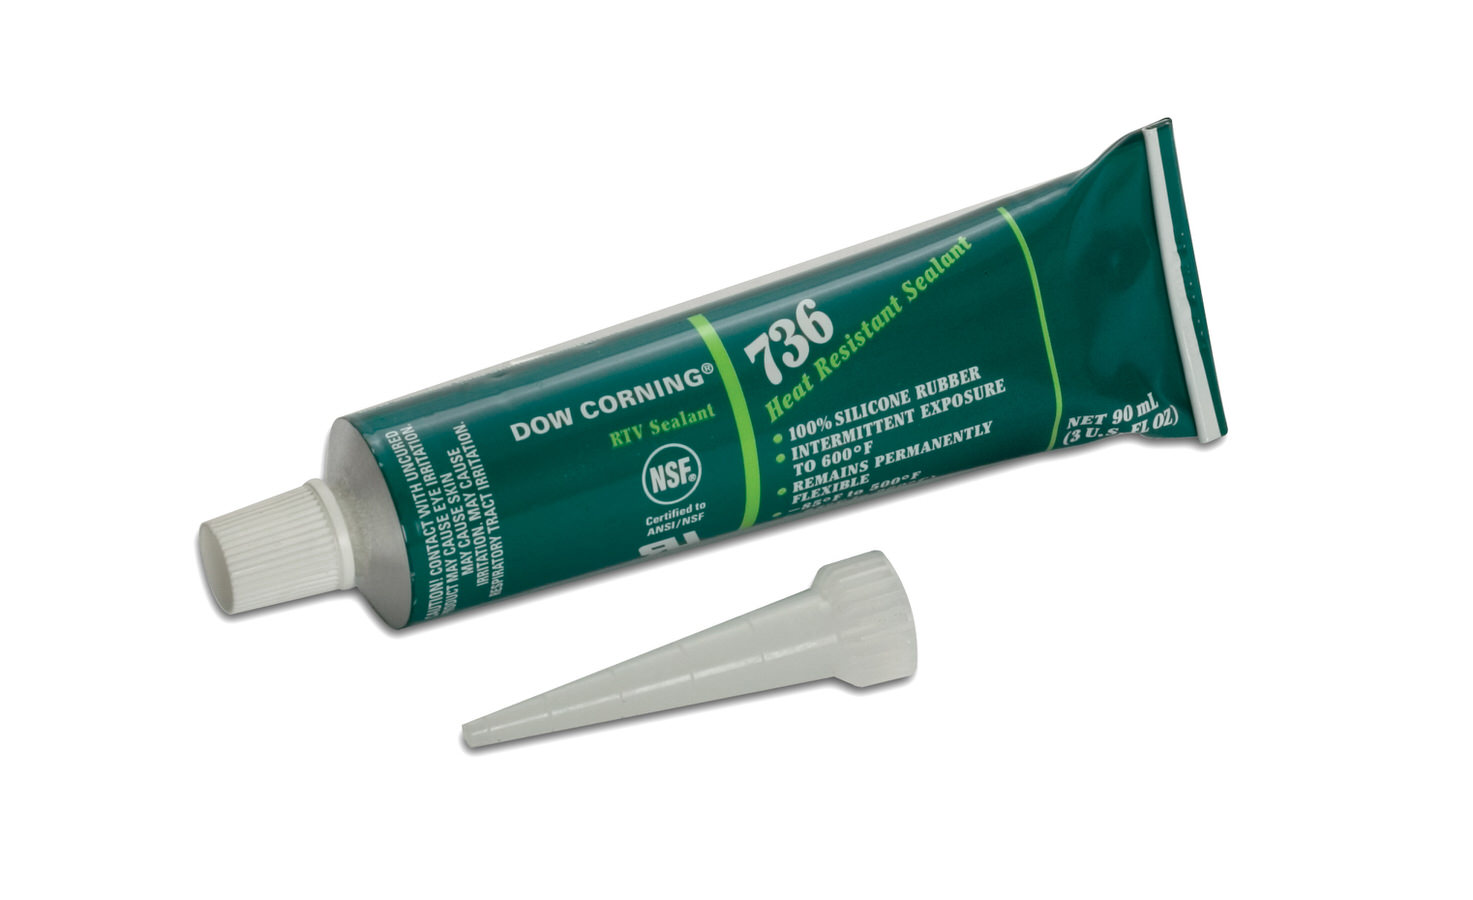 dow corning sealant installation instructions